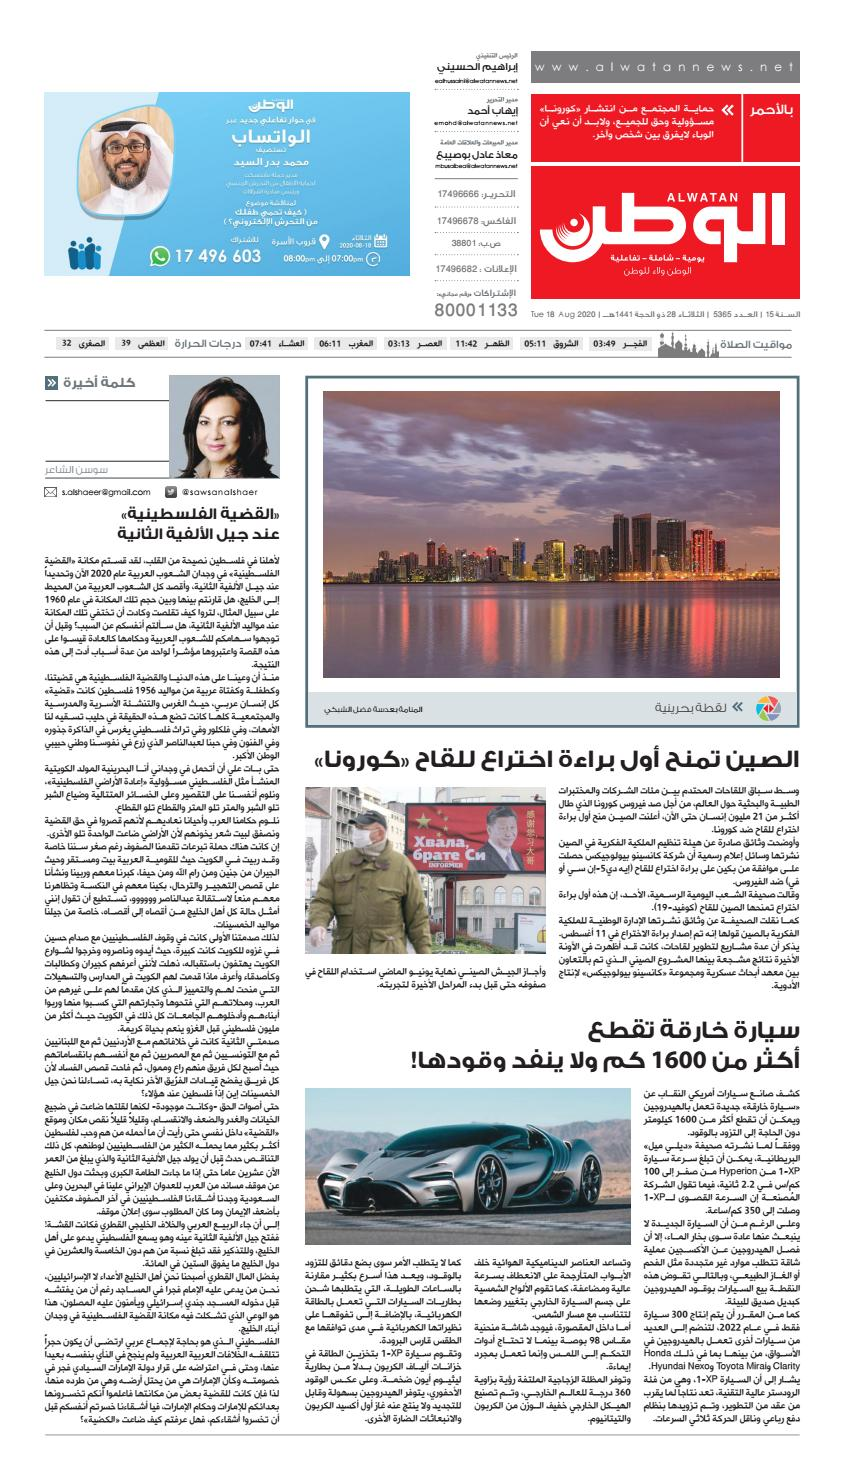 Alwatan 18 AUG 2020 by Alwatan_BH - issuu